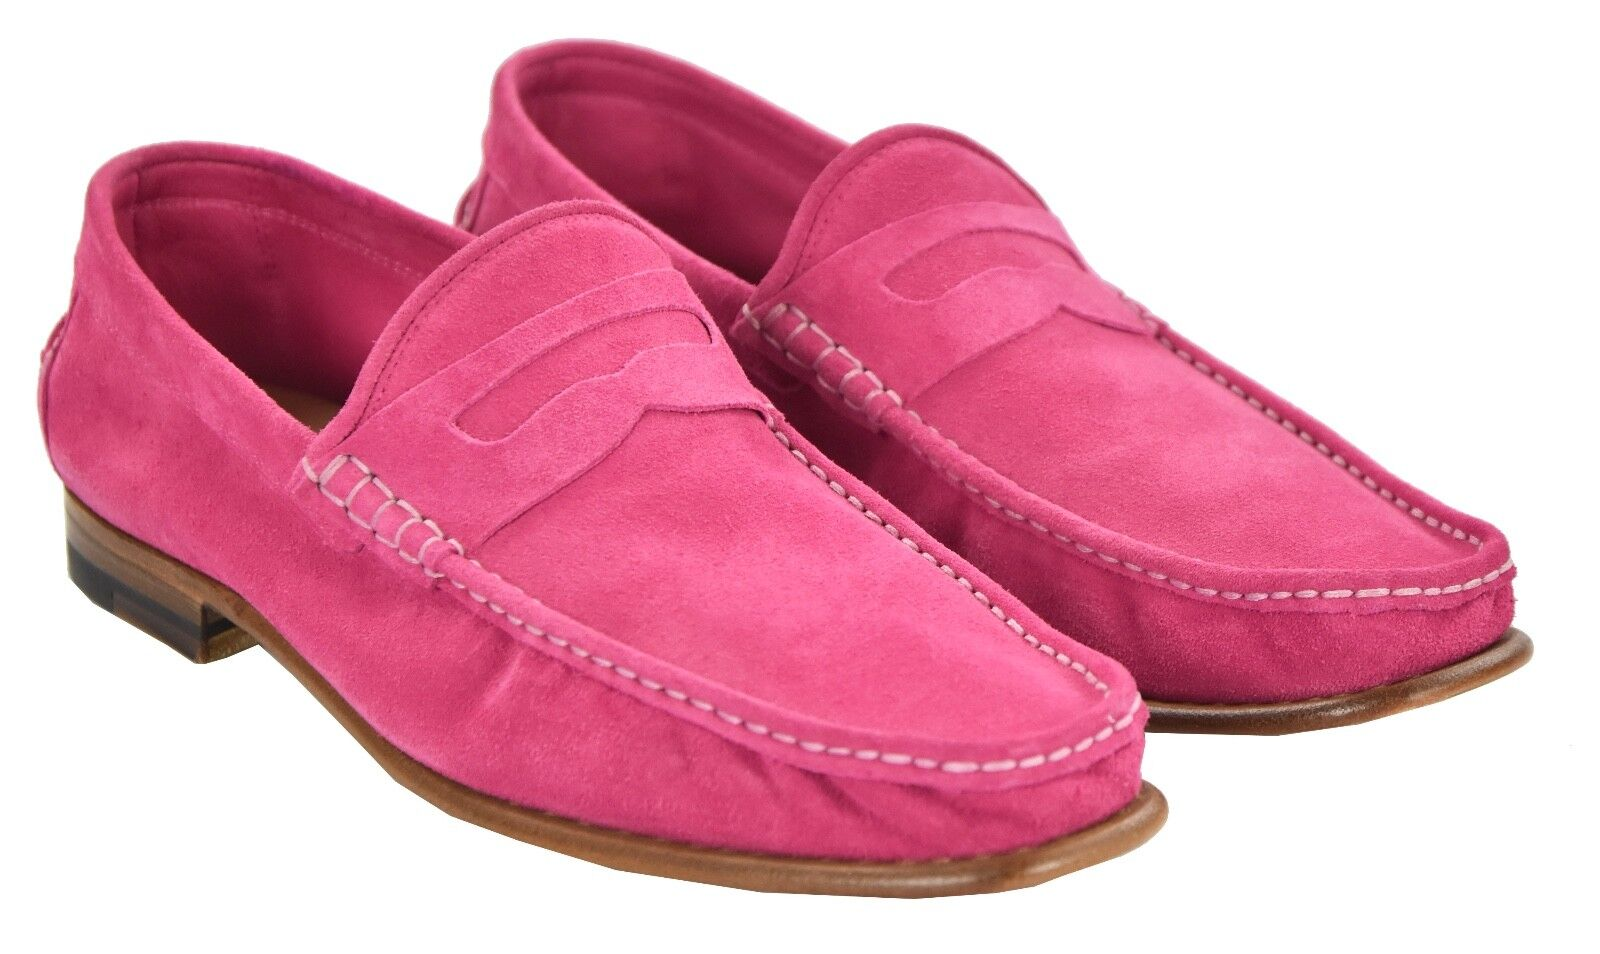 NEW KITON NAPOLI LOAFERS SHOES 100% LEATHER SUEDE SIZE 9.5 US 42.5 O68